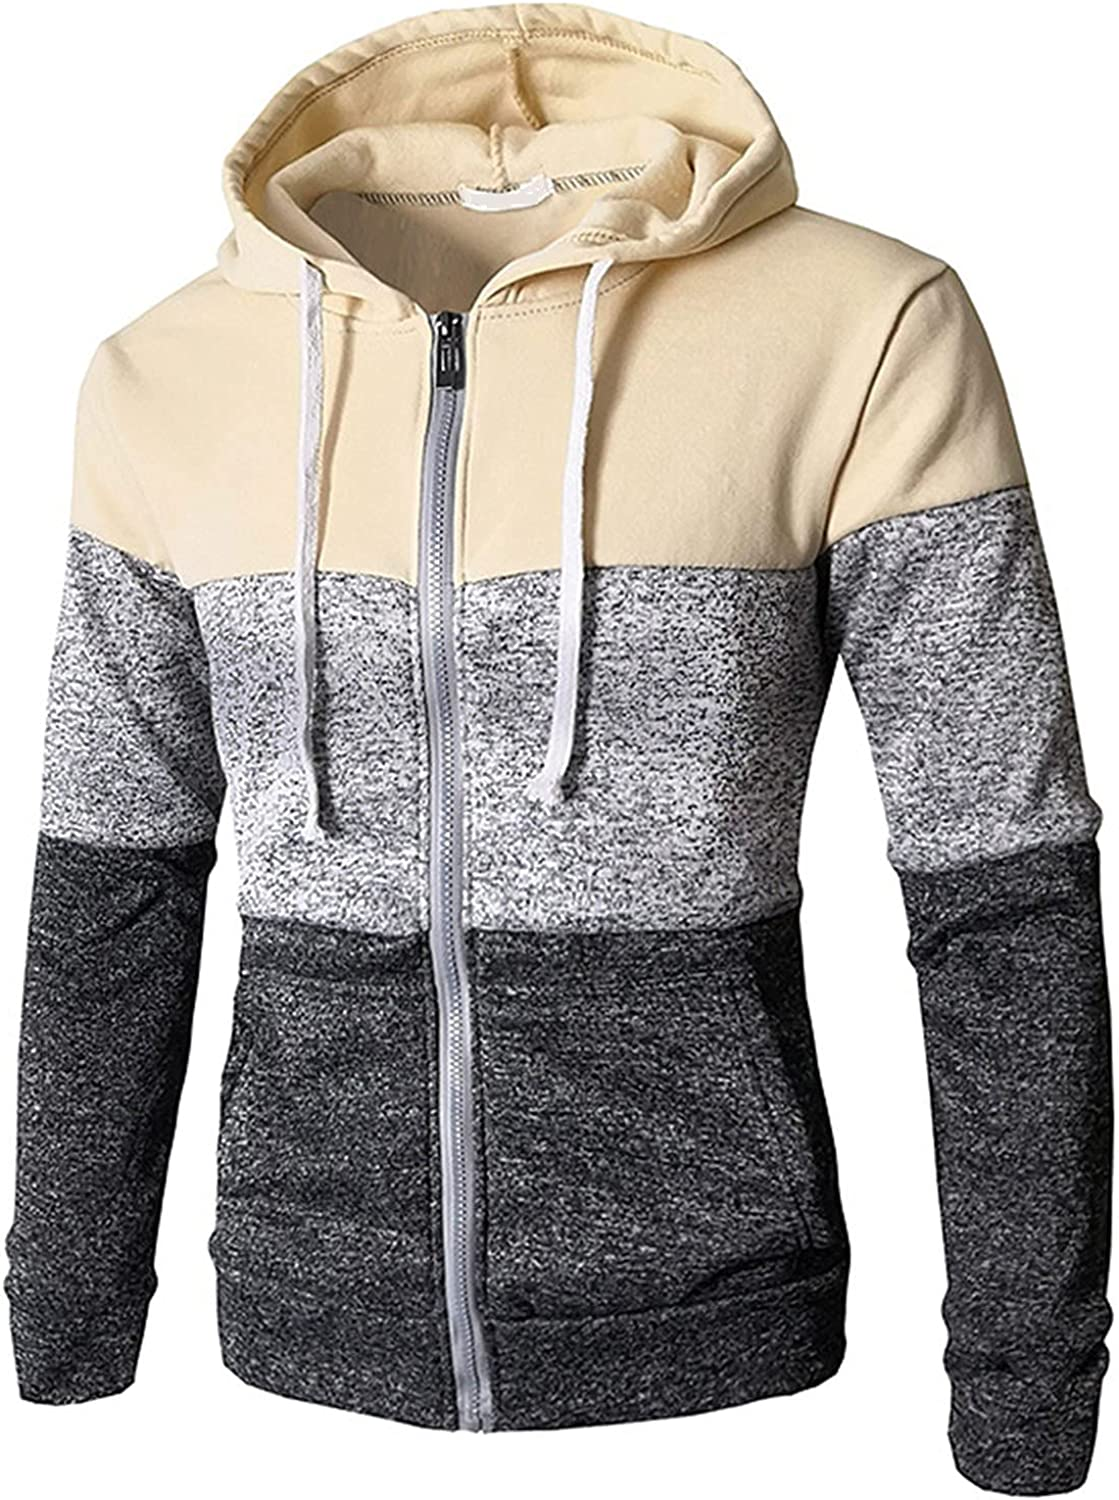 Men's Hooded Safety and trust Stripes Plus Velvet Knitted Cardigan Max 71% OFF Warm Ja Padded